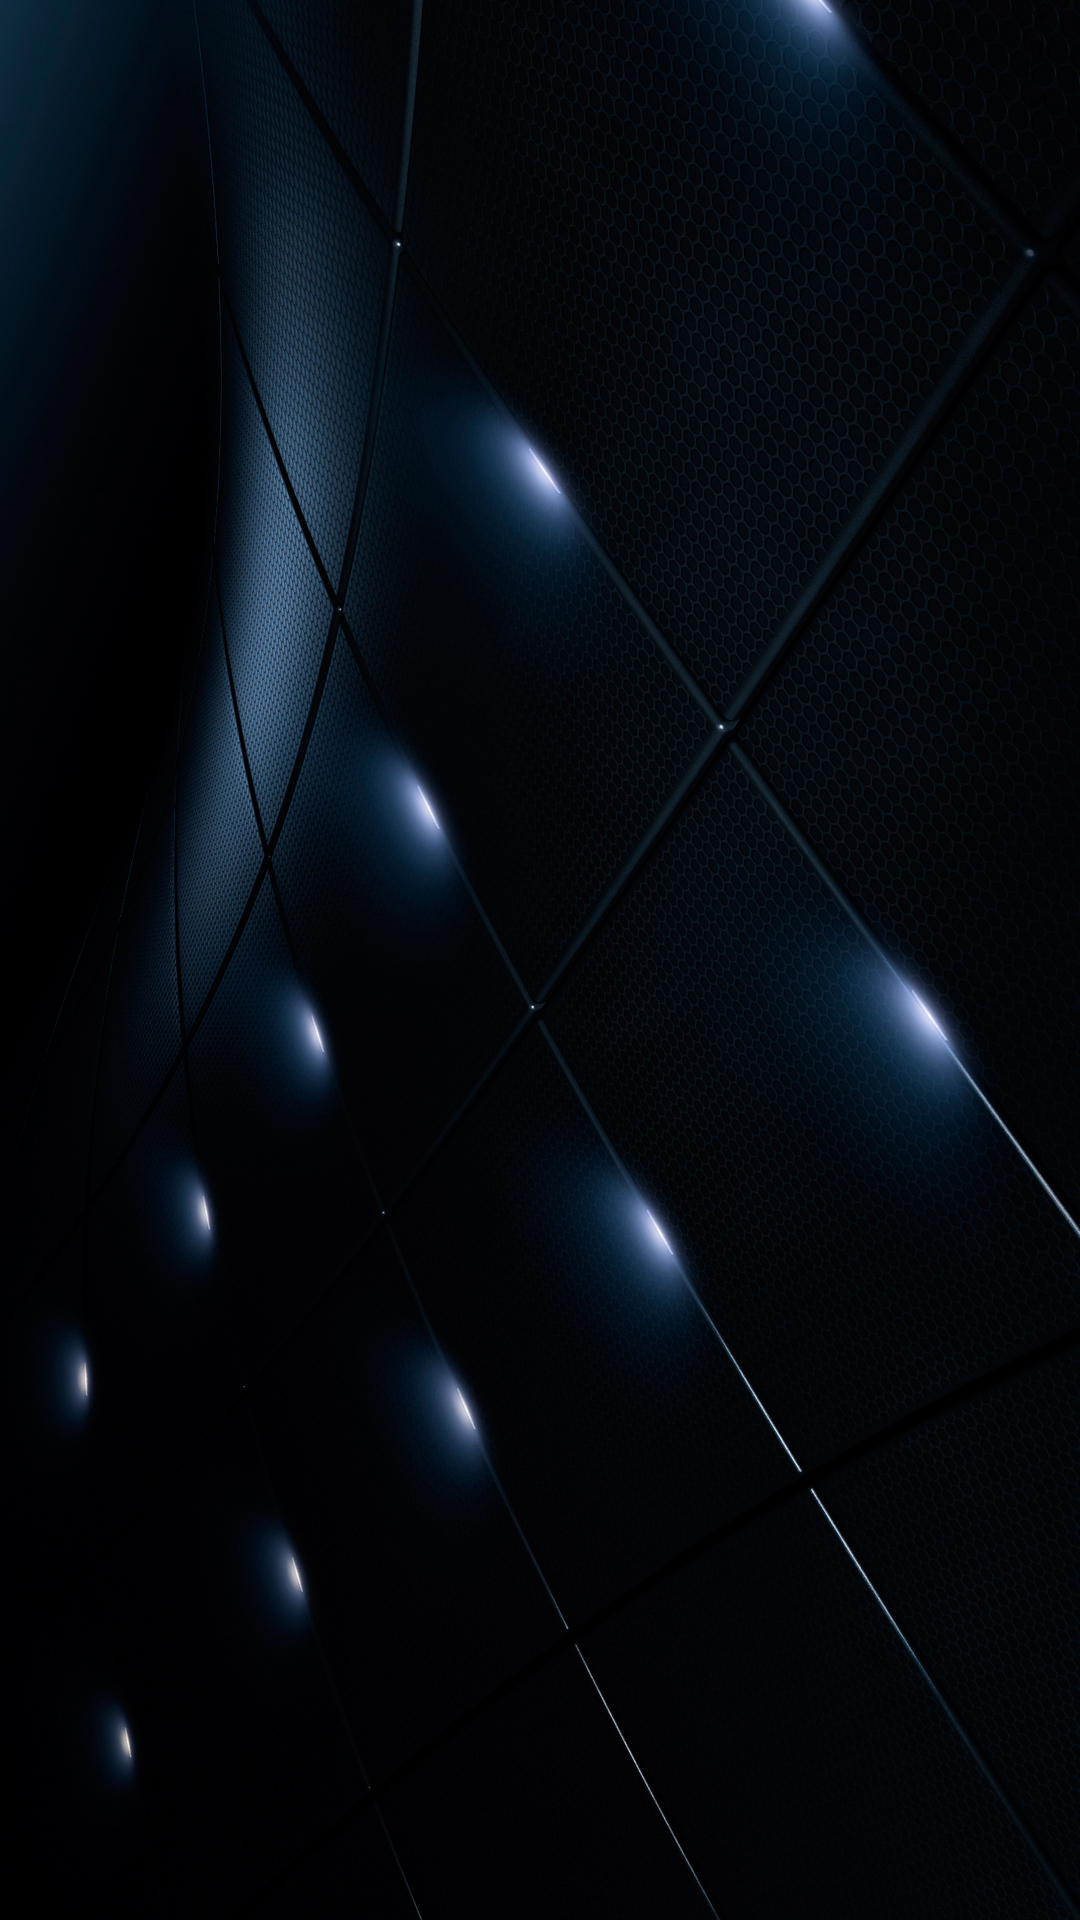 Galaxy s4 wallpaper with dark blue abstract design 1080x1920 1080x1920